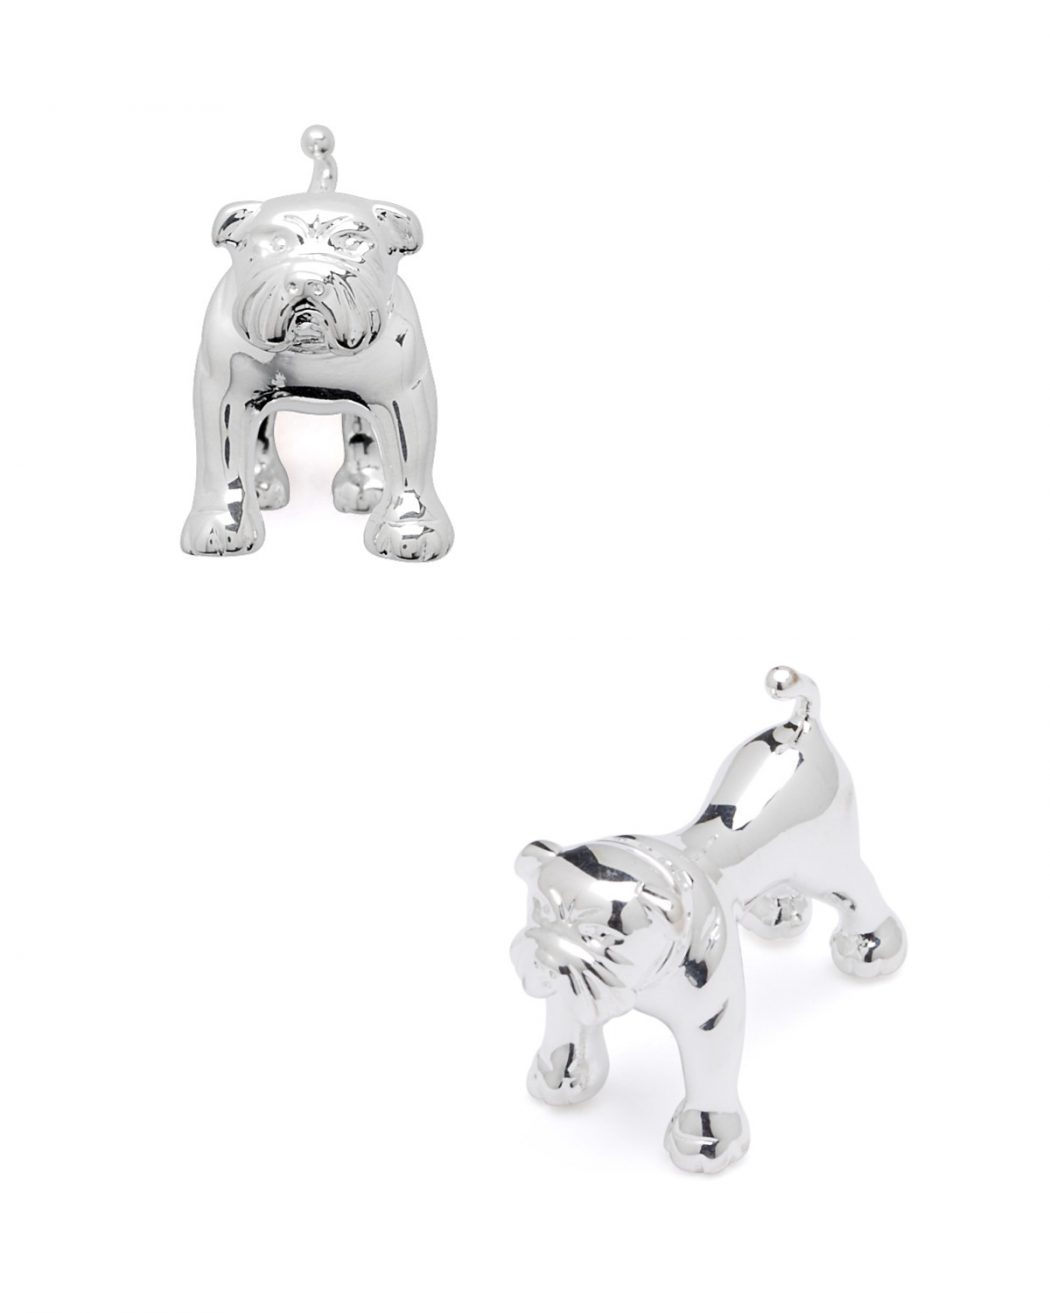 8386201_fpx Cufflinks: The Most Favorite Men Jewelry